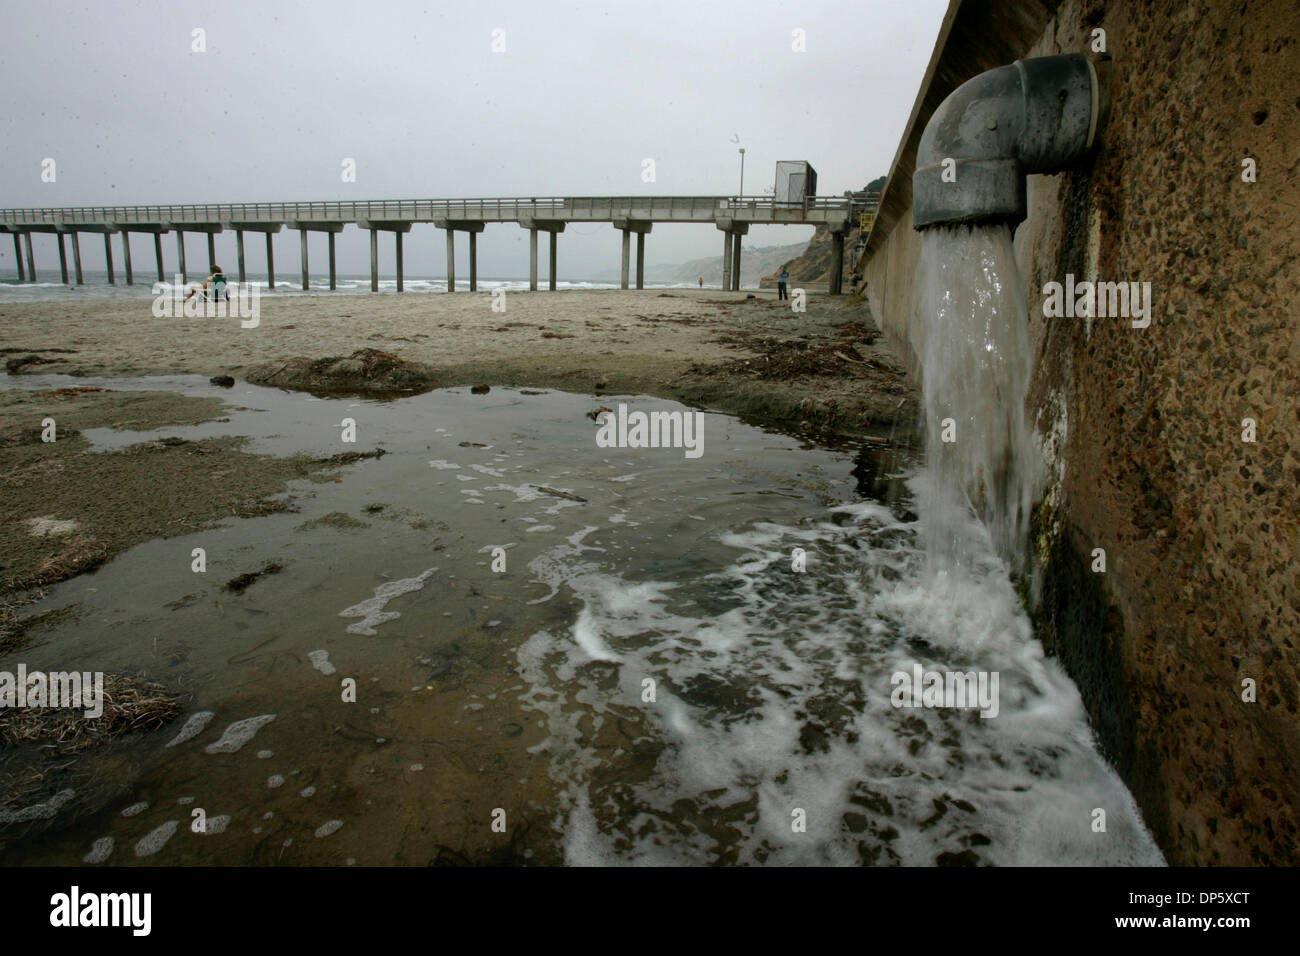 Sep 27, 2006; San Diego, CA, USA; One of six salt-water outflow pipes, sorth of the pier at Scripps Institute of Oceanography in La Jolla. The pipes discharge varying amounts of salt-water that is used by the Birch Aquarium at Scripps and for research at the institution, onto a strip of beach, which the state has designated an 'Area of Special Biological Significance'. Mandatory Cr - Stock Image